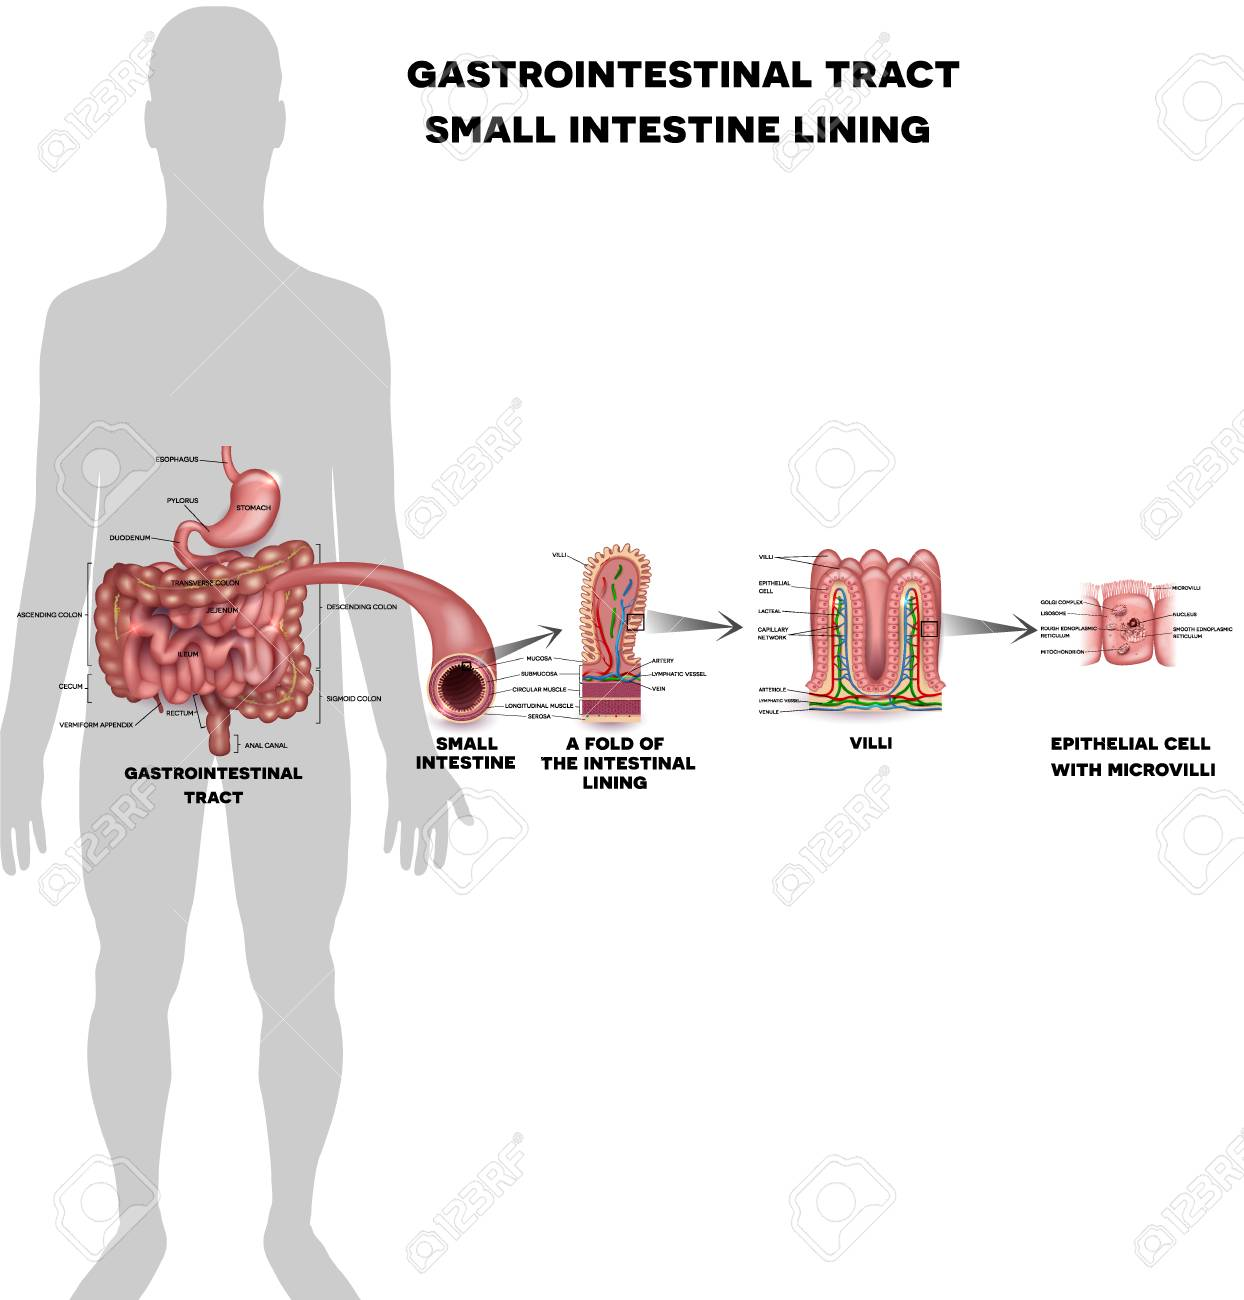 Small intestine lining anatomy, a fold of the intestinal lining, villi and epithelial cell with microvilli detailed illustrations. - 90221333